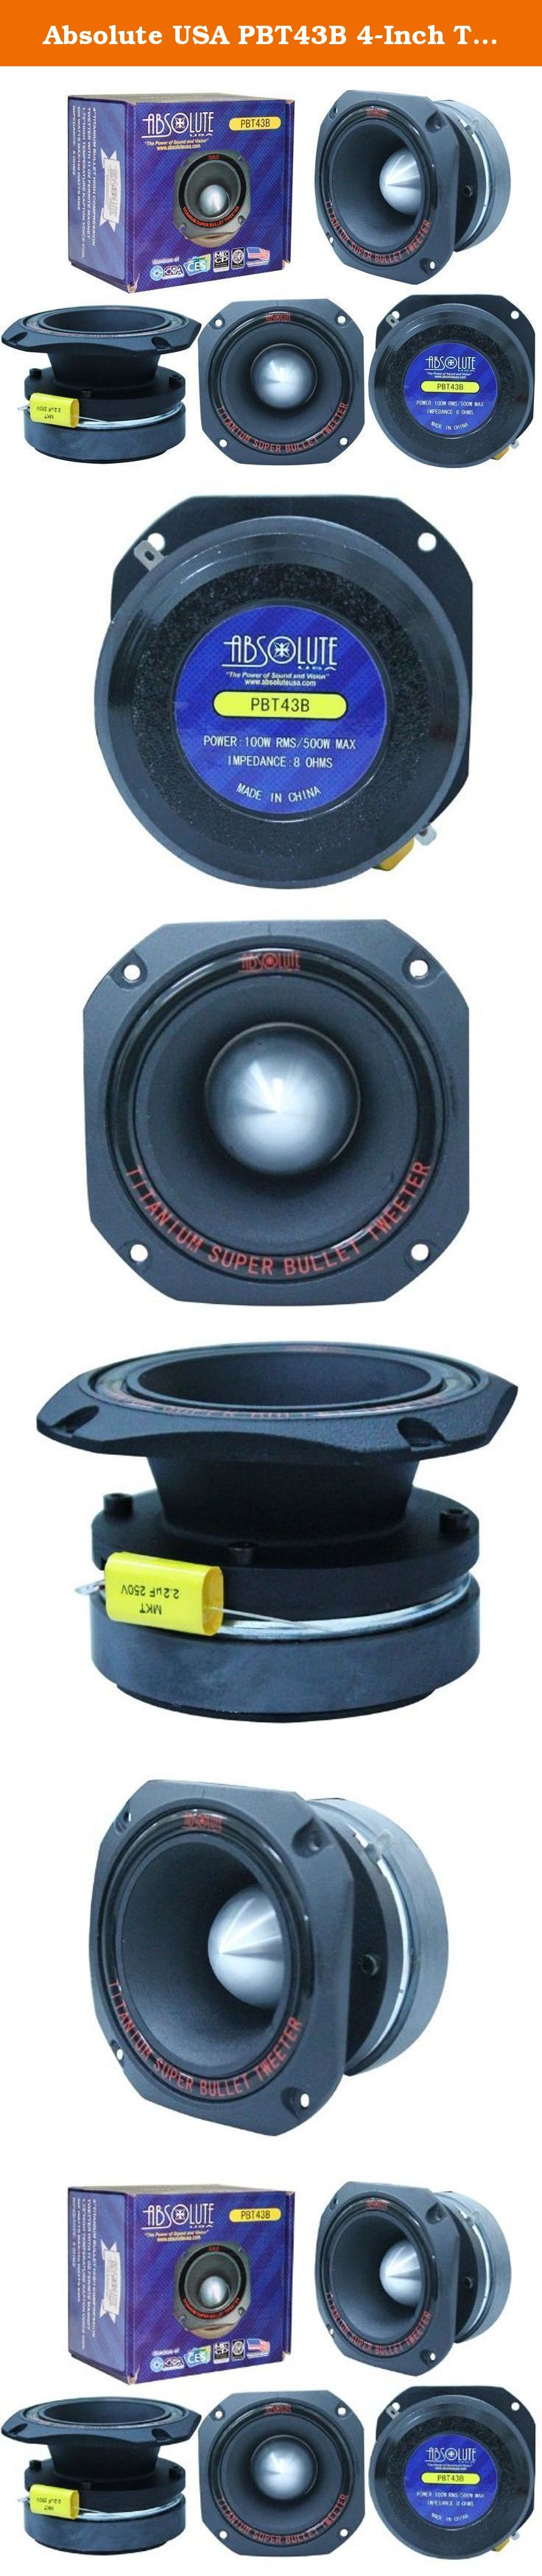 Absolute USA PBT1 1-Inch Titanium Bullet High Compression Tweeter with 11 Oz Ferrite Magnet